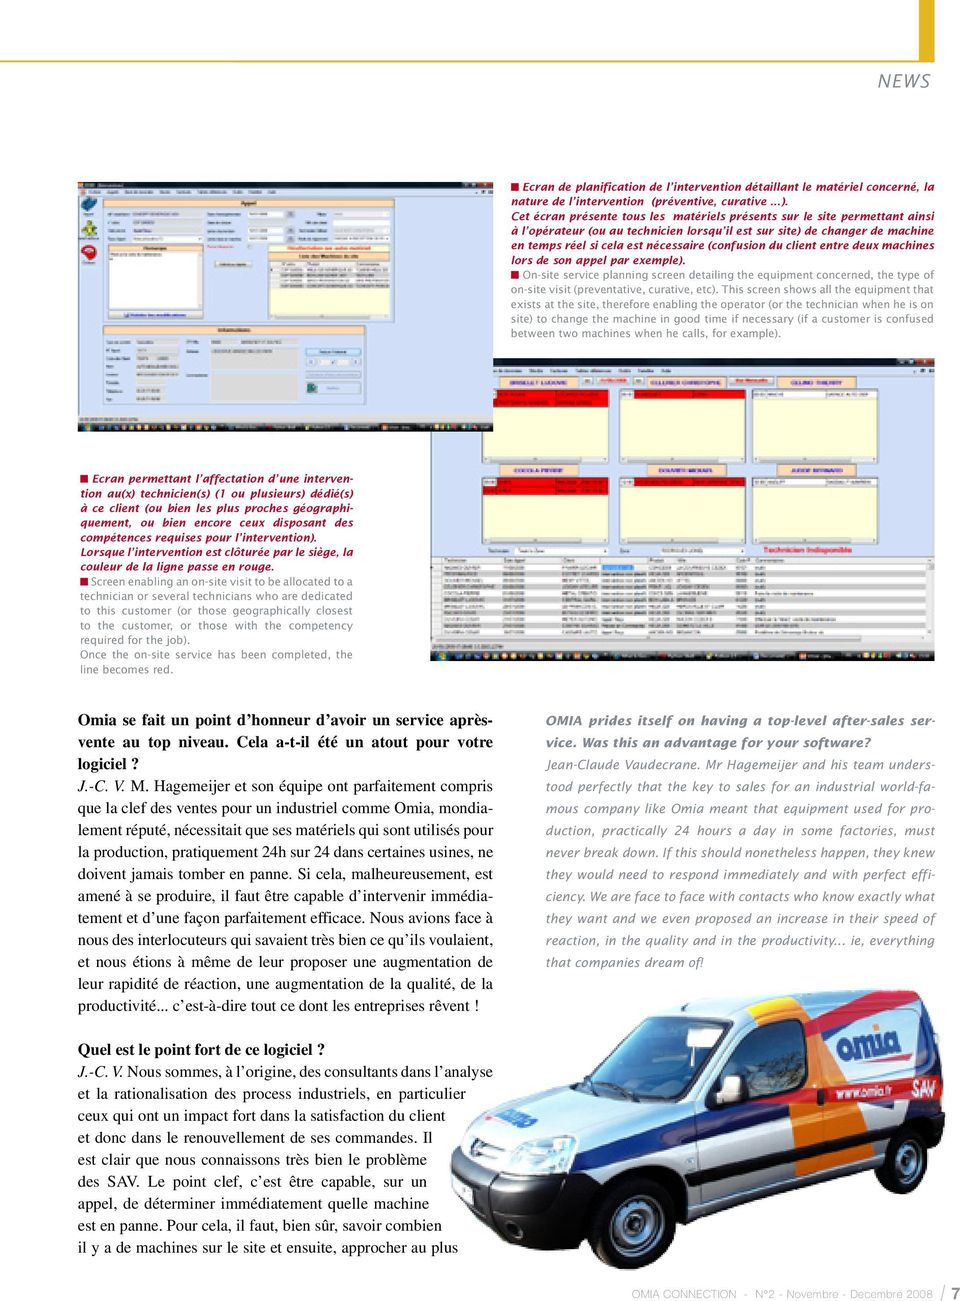 (confusion du client entre deux machines lors de son appel par exemple). On-site service planning screen detailing the equipment concerned, the type of on-site visit (preventative, curative, etc).